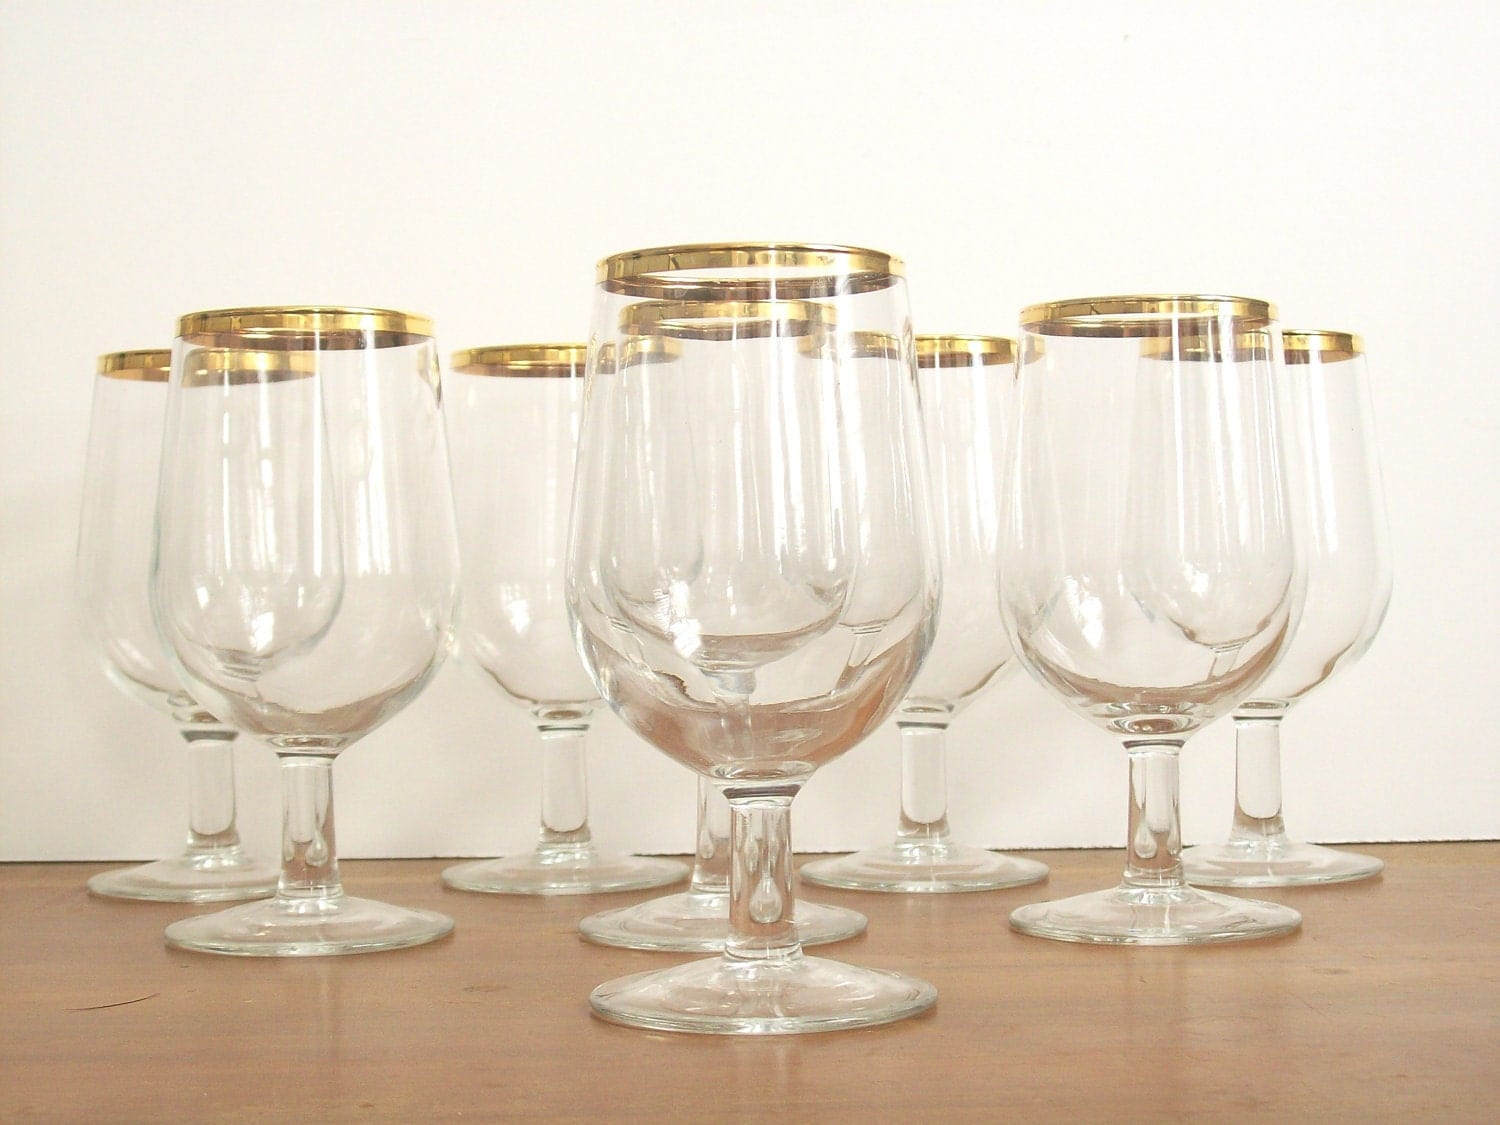 gold rimmed wine glasses water goblets vintage stemware. Black Bedroom Furniture Sets. Home Design Ideas